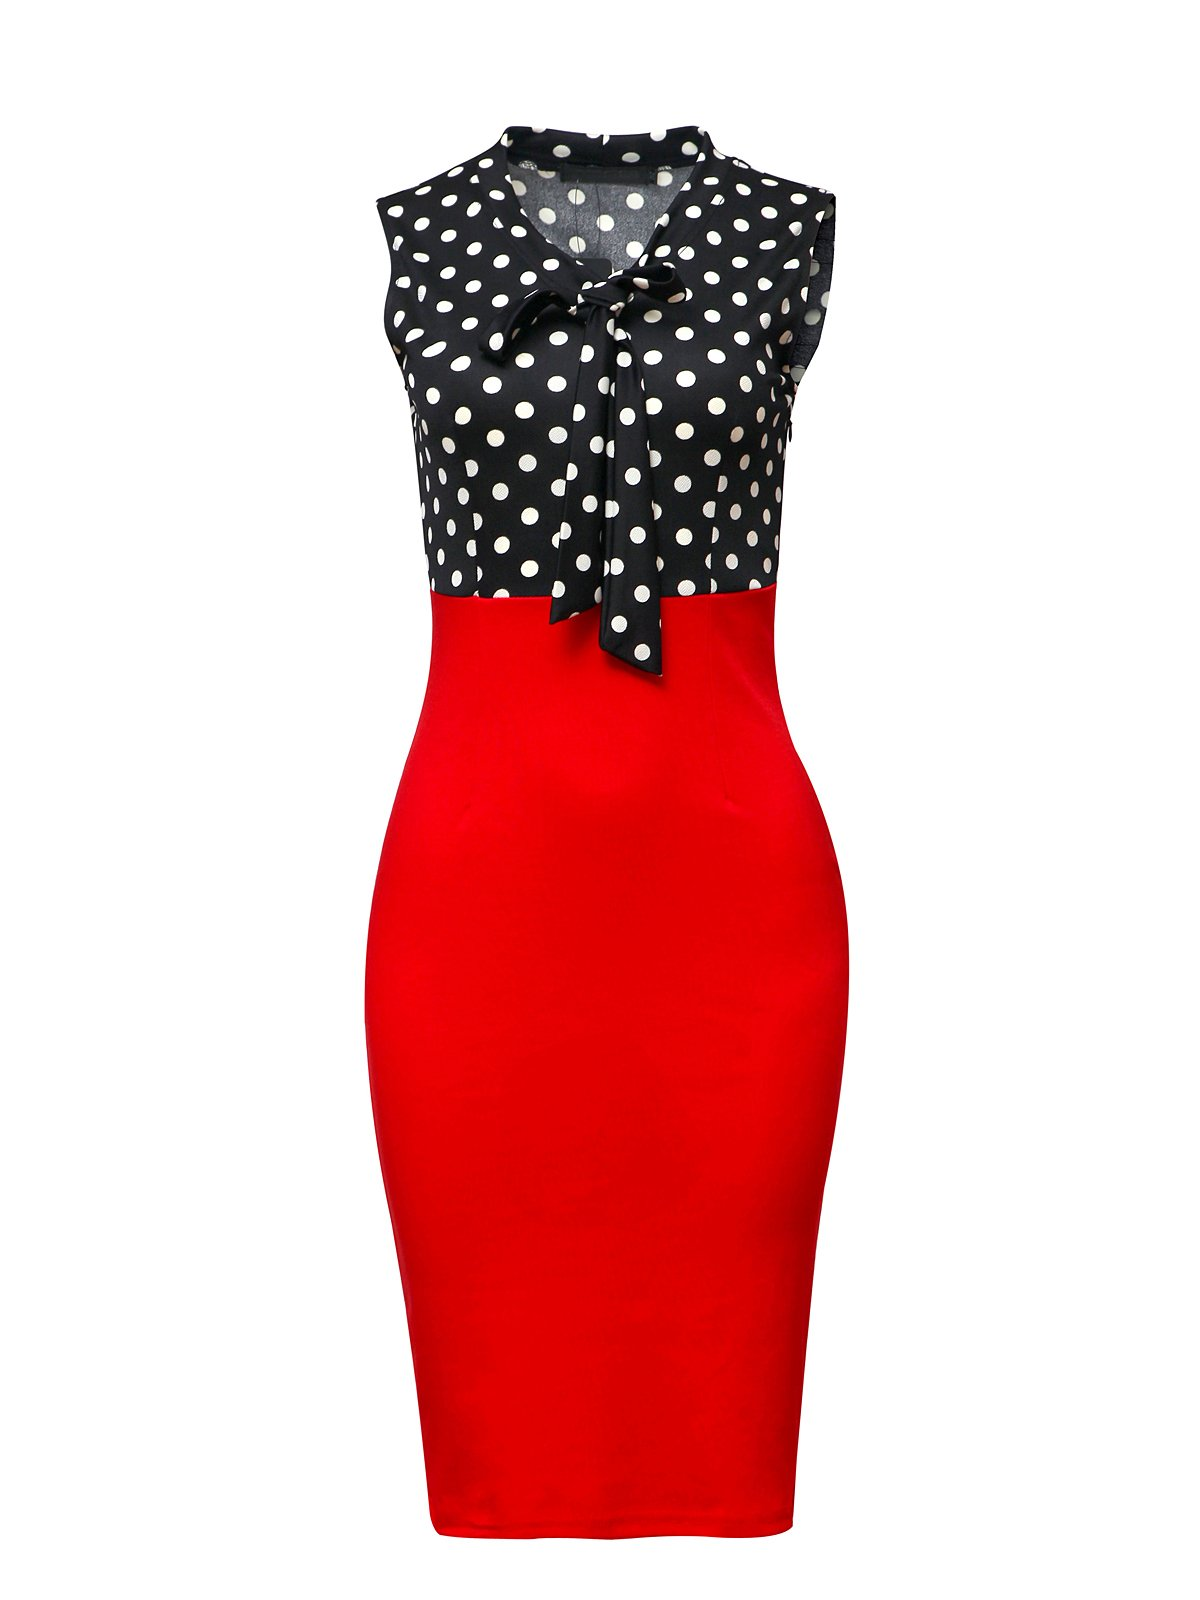 CISMARK Chic Color block V Neck Sleeveless Business Pencil Dress Red Red S